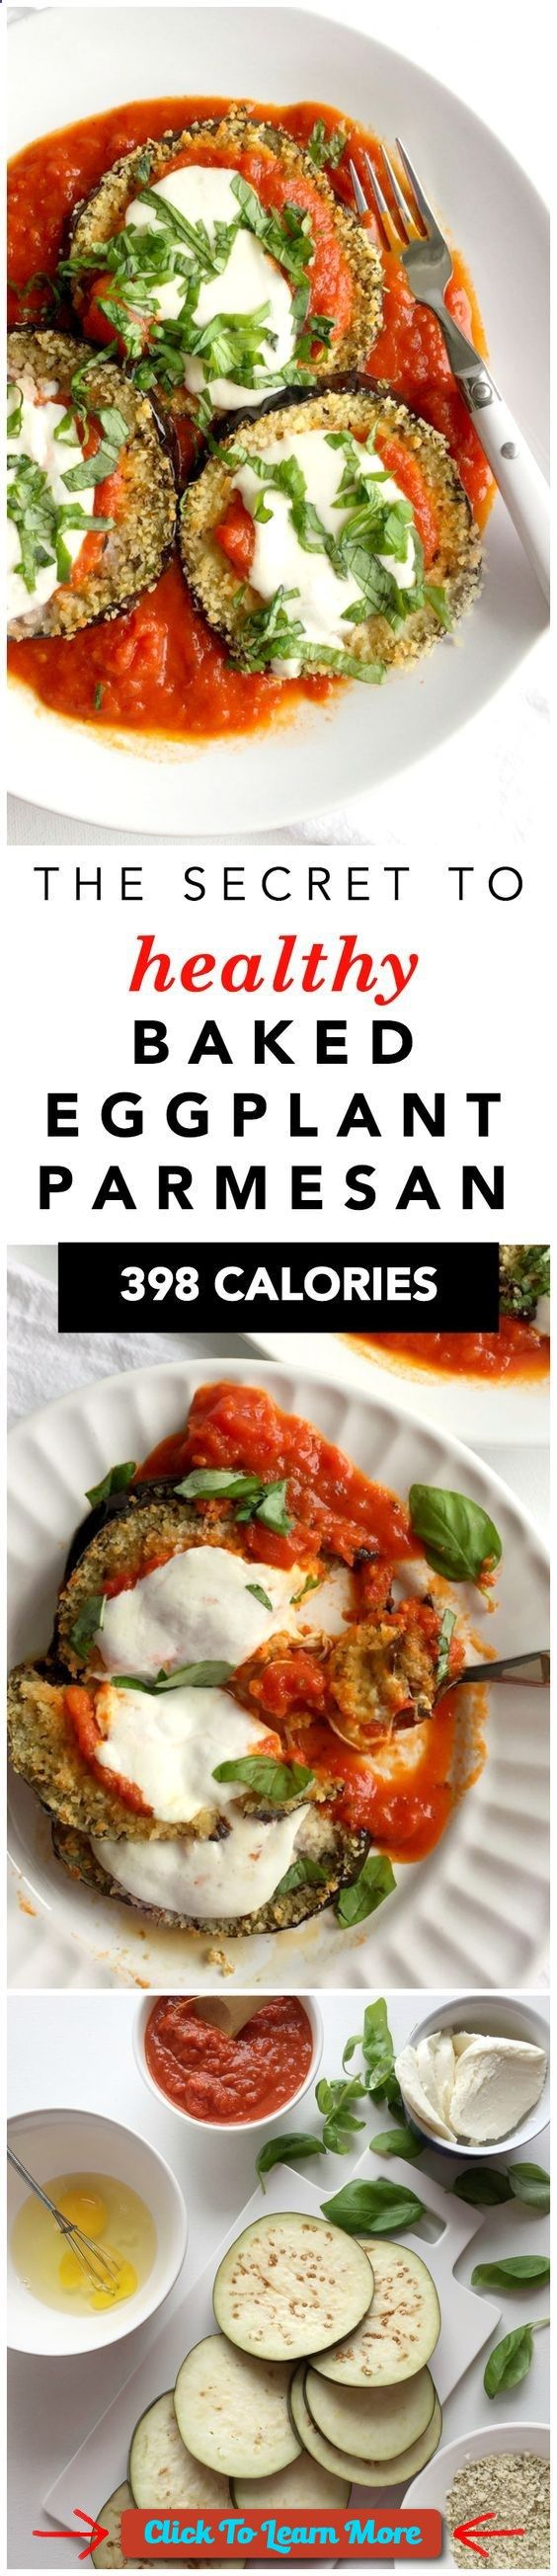 #FastestWayToLoseWeight by EATING, Click to learn more, Healthy Baked Eggplant Parmesan Recipe! The secrets on how to make healthy baked eggplant parmesan recipe with panko bread crumbs and fresh mozzarella! 398 calories per serving:: , #HealthyRecipes, #FitnessRecipes, #BurnFatRecipes, #WeightLossRecipes, #WeightLossDiets